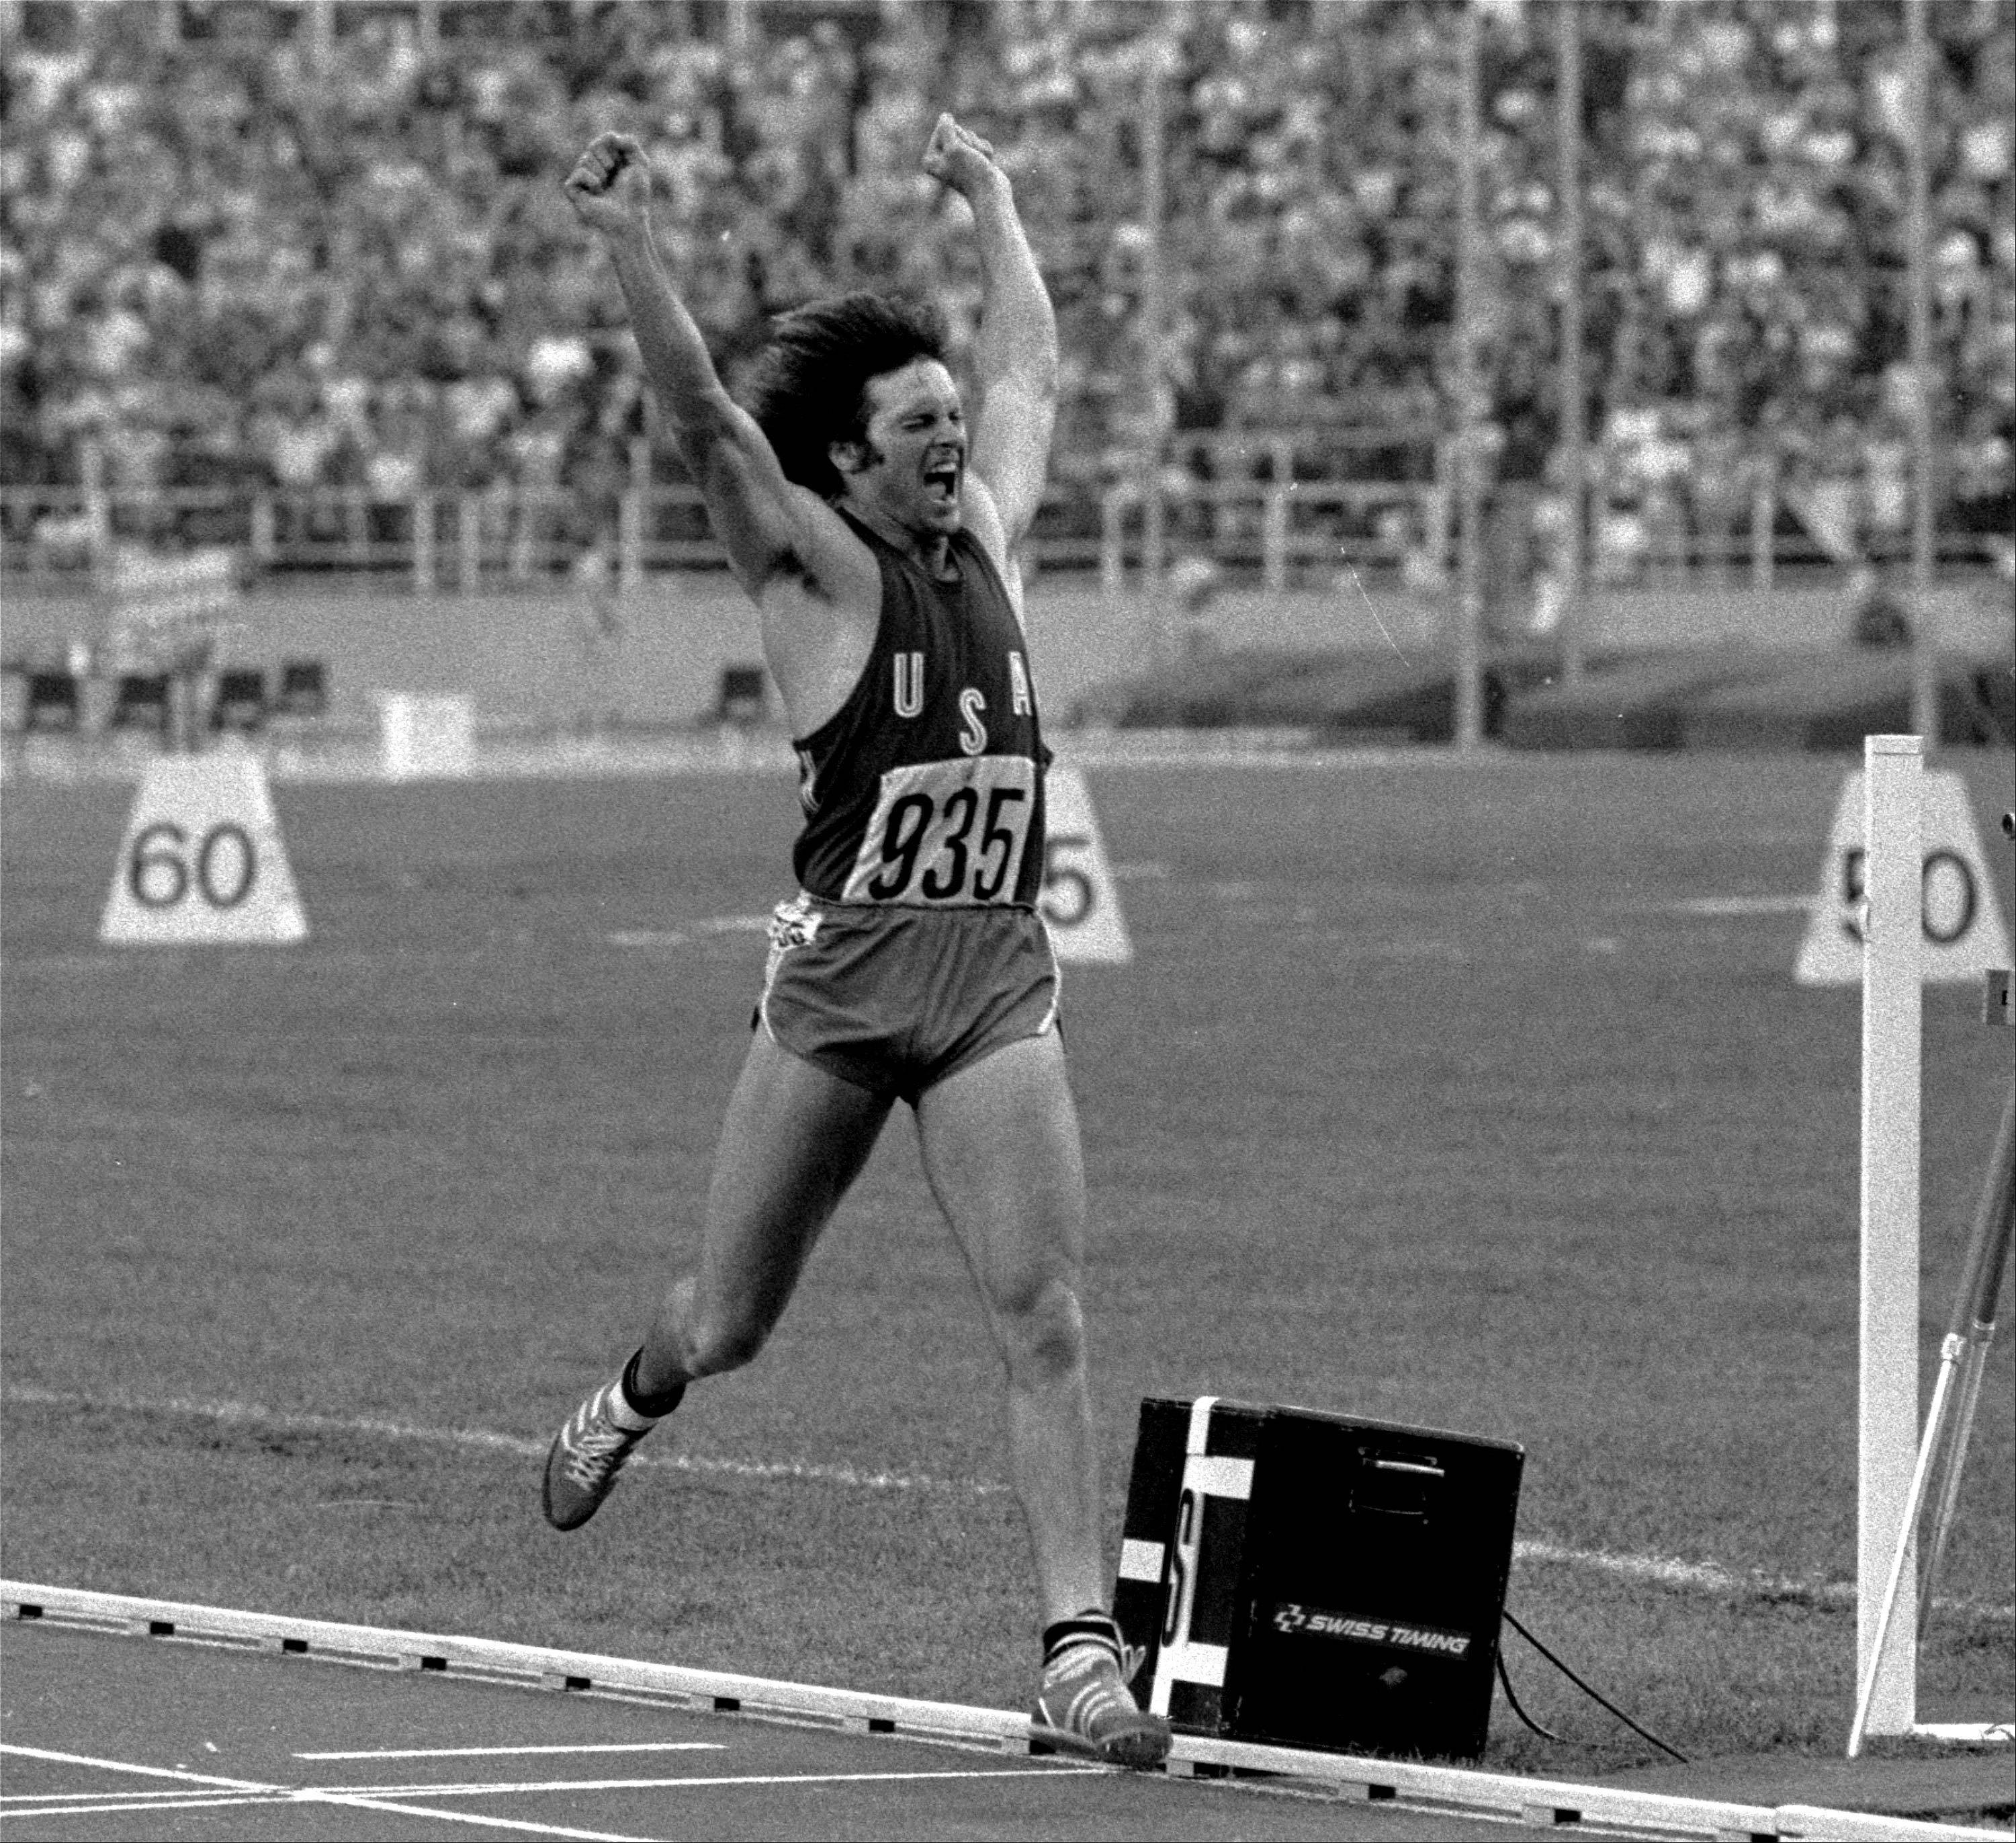 Bruce Jenner won gold in the Olympic Decathlon in Montreal in 1976.